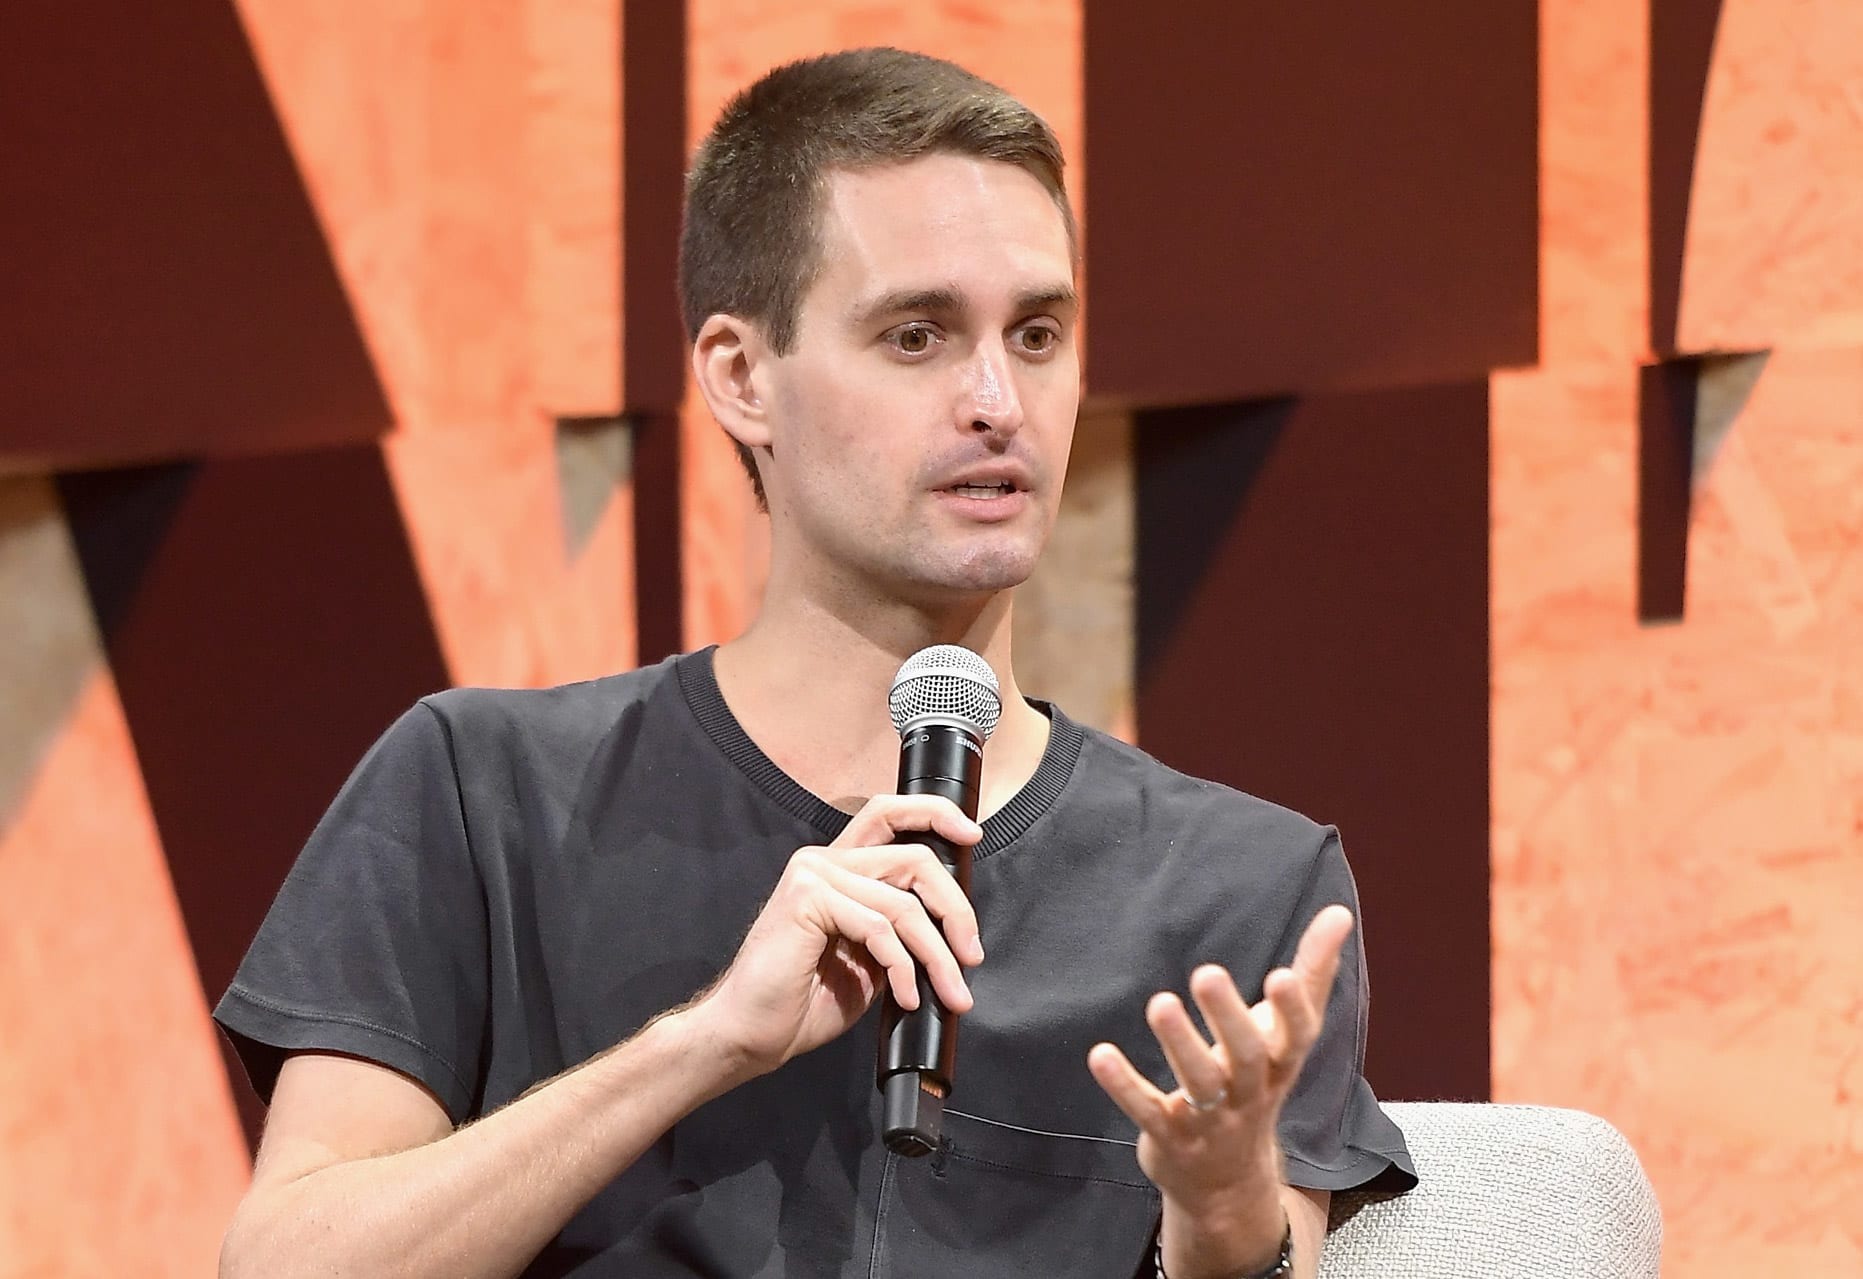 Snap stock climbs on optimism about augmented reality e-commerce, ad growth in 2021